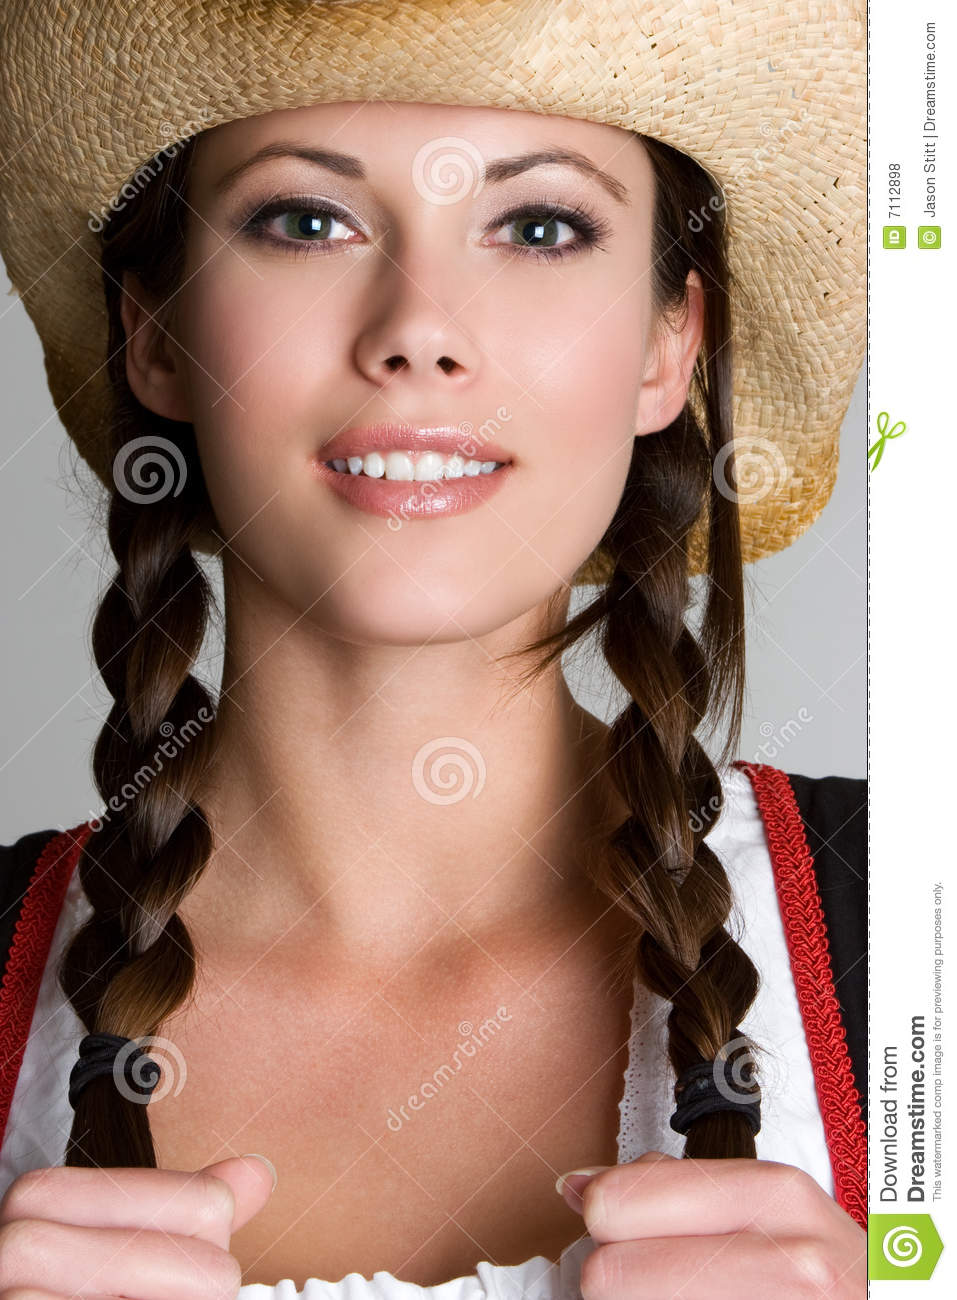 Beautiful Girl Wearing Hat Wallpaper Pretty Cowgirl Stock Photo Image Of Woman Attractive